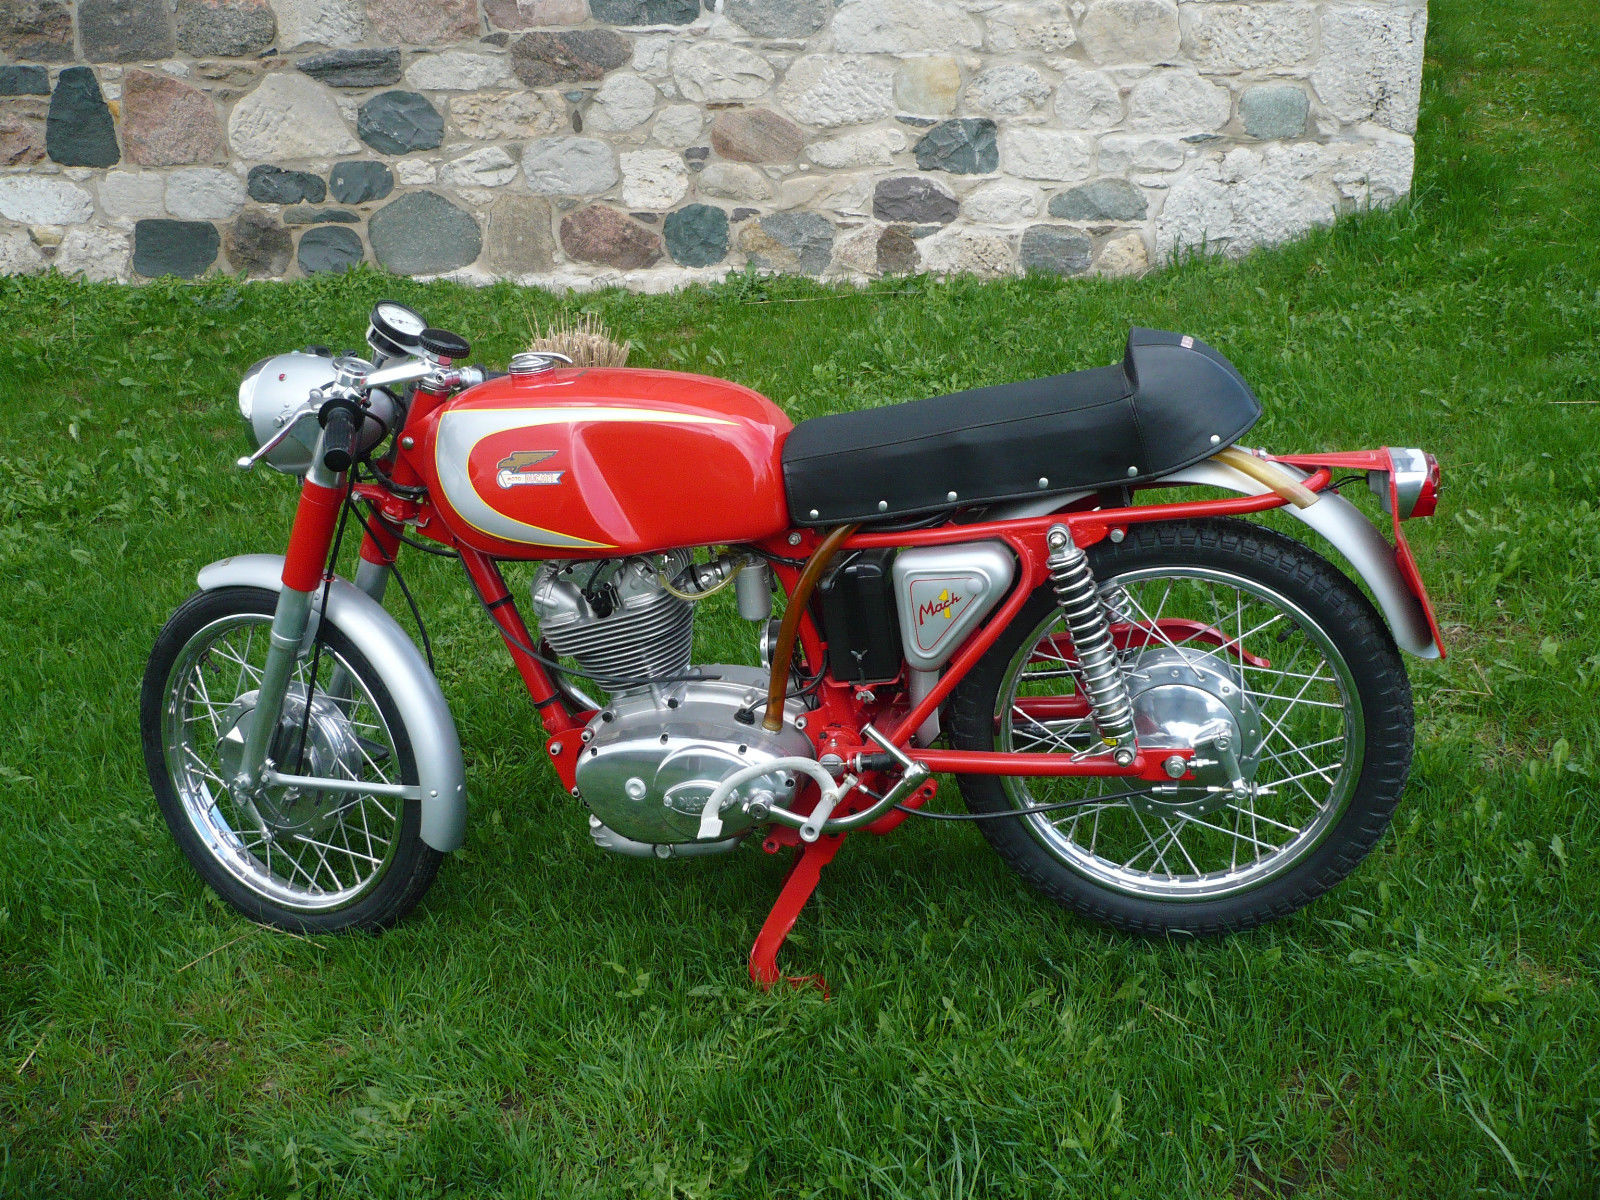 Ducati Mach 1 - 1965 - Left Side View, Motor and Transmission, Kick Start, Swing Arm, Seat and Tank.